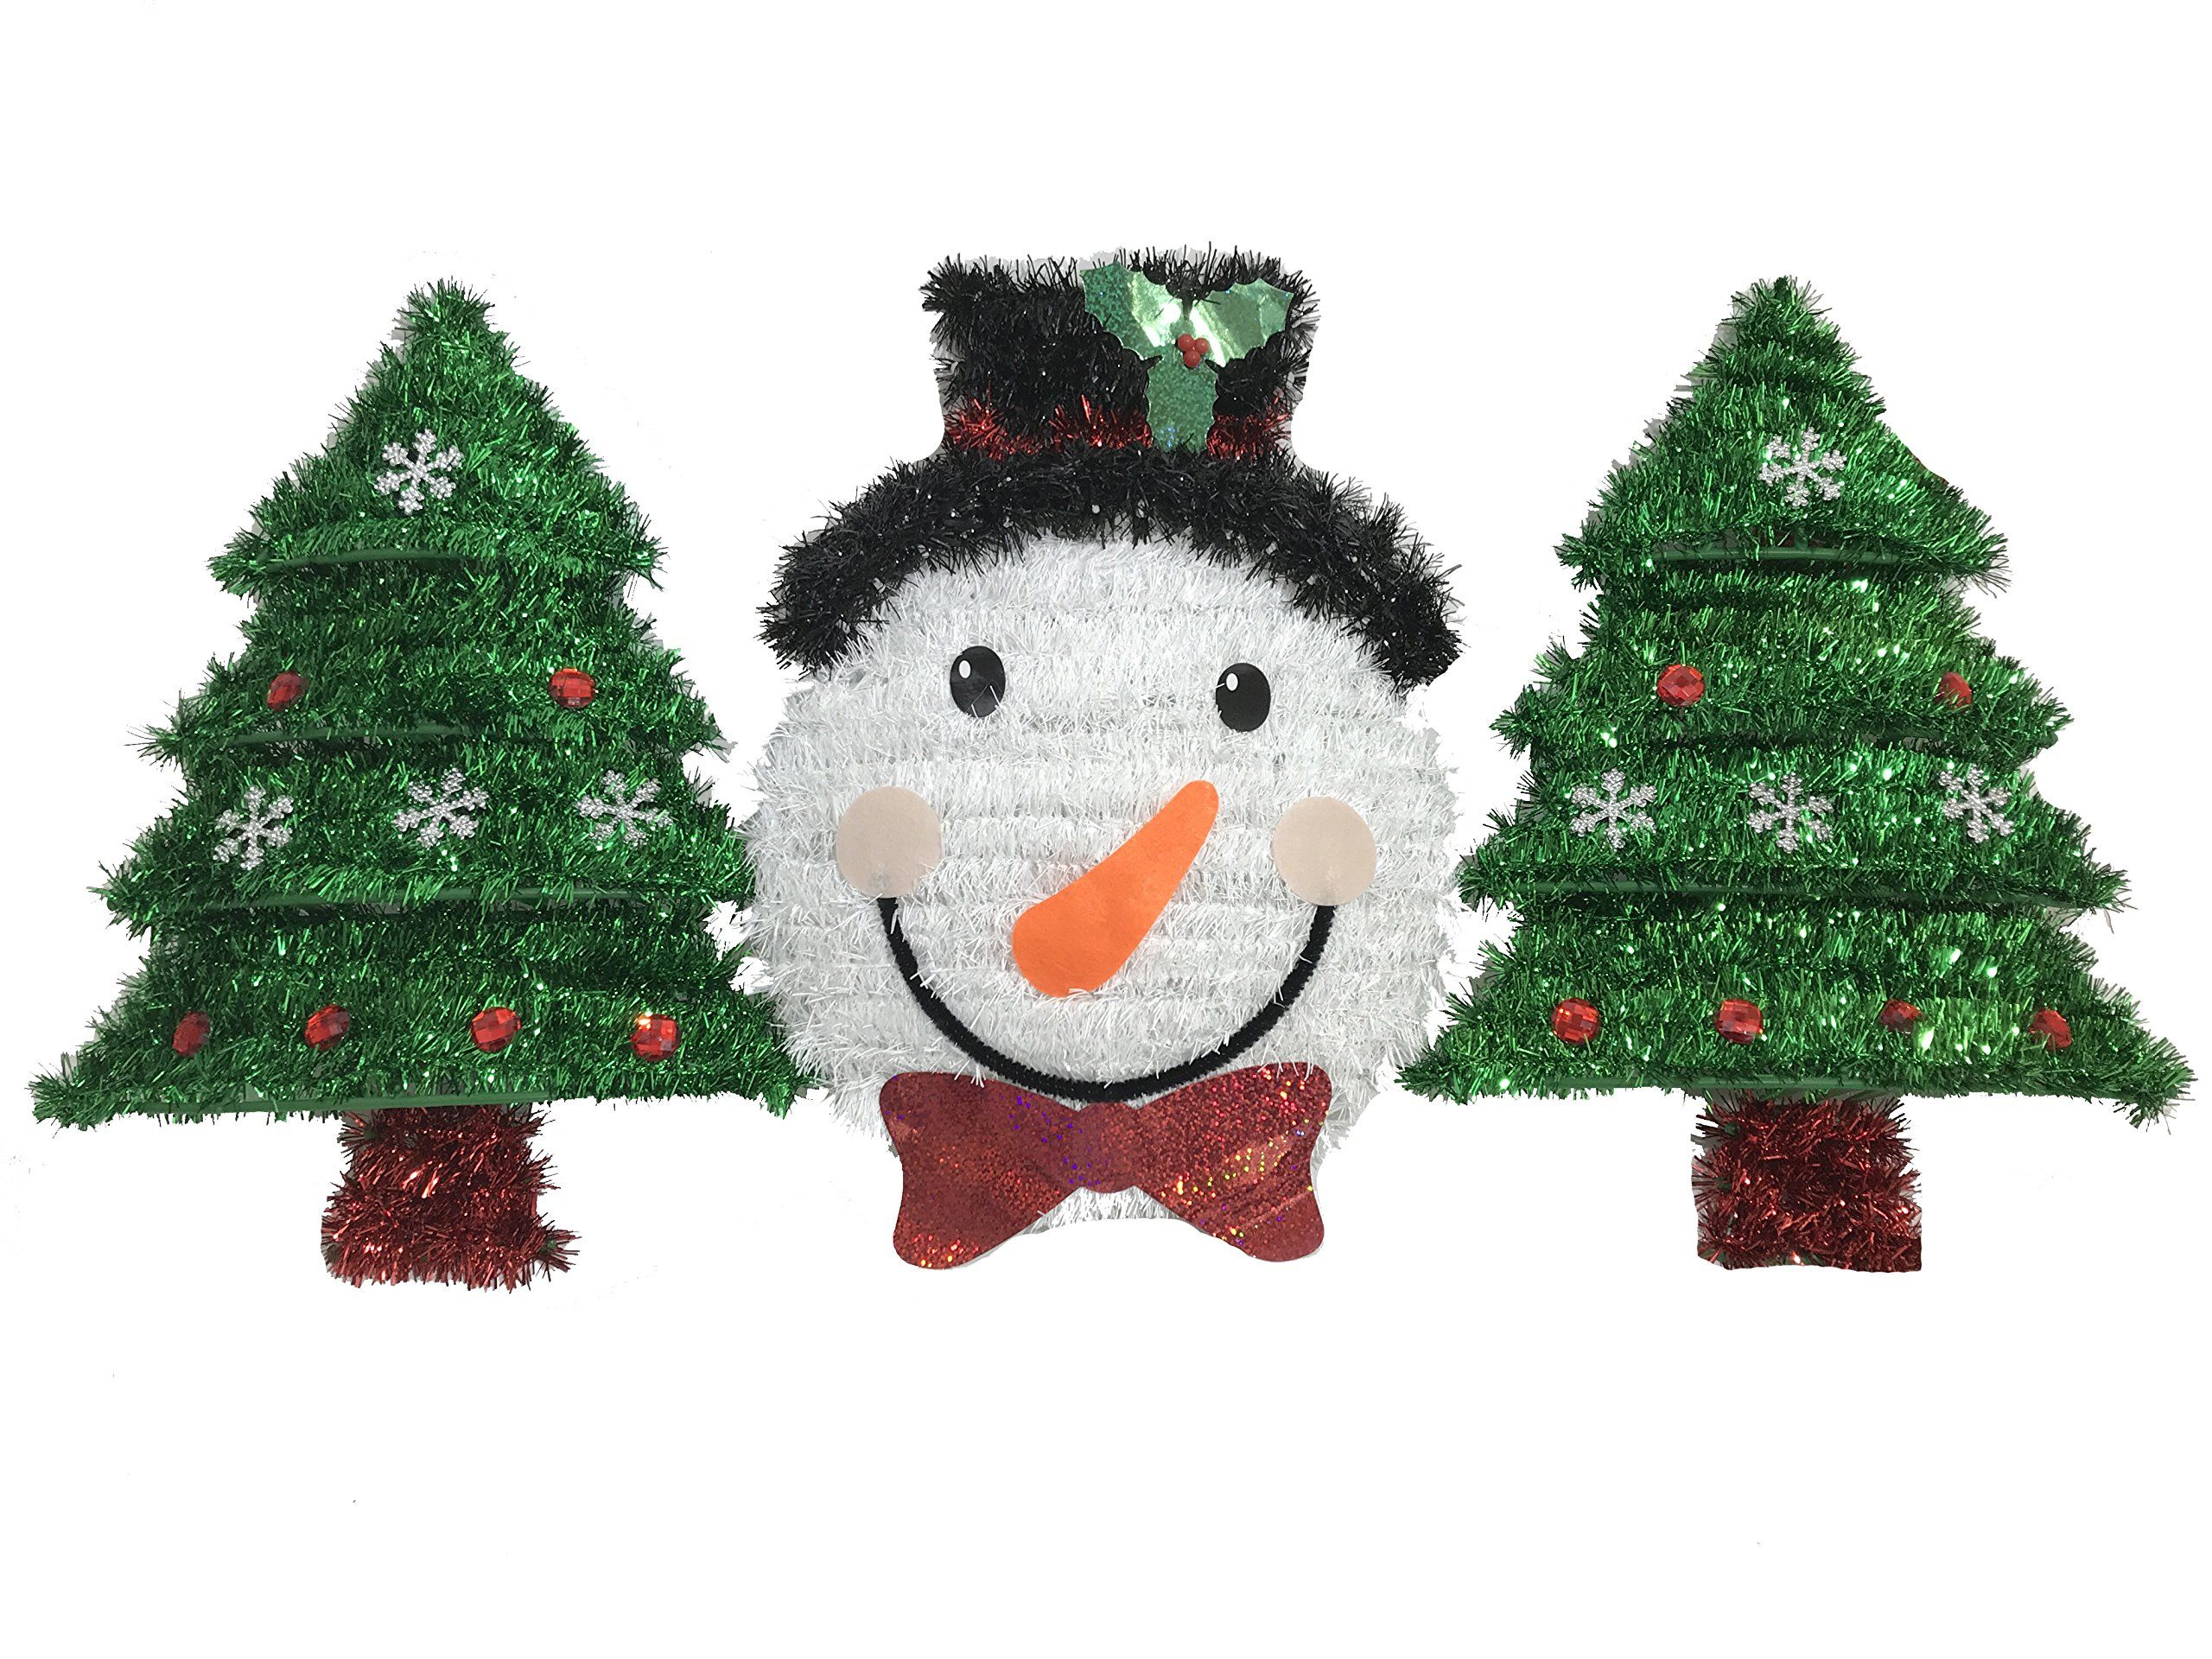 Christmas Garland Tinsel Decoration Set Of 3 Sparkly Snowman And Tree Decor For Holiday Festivities